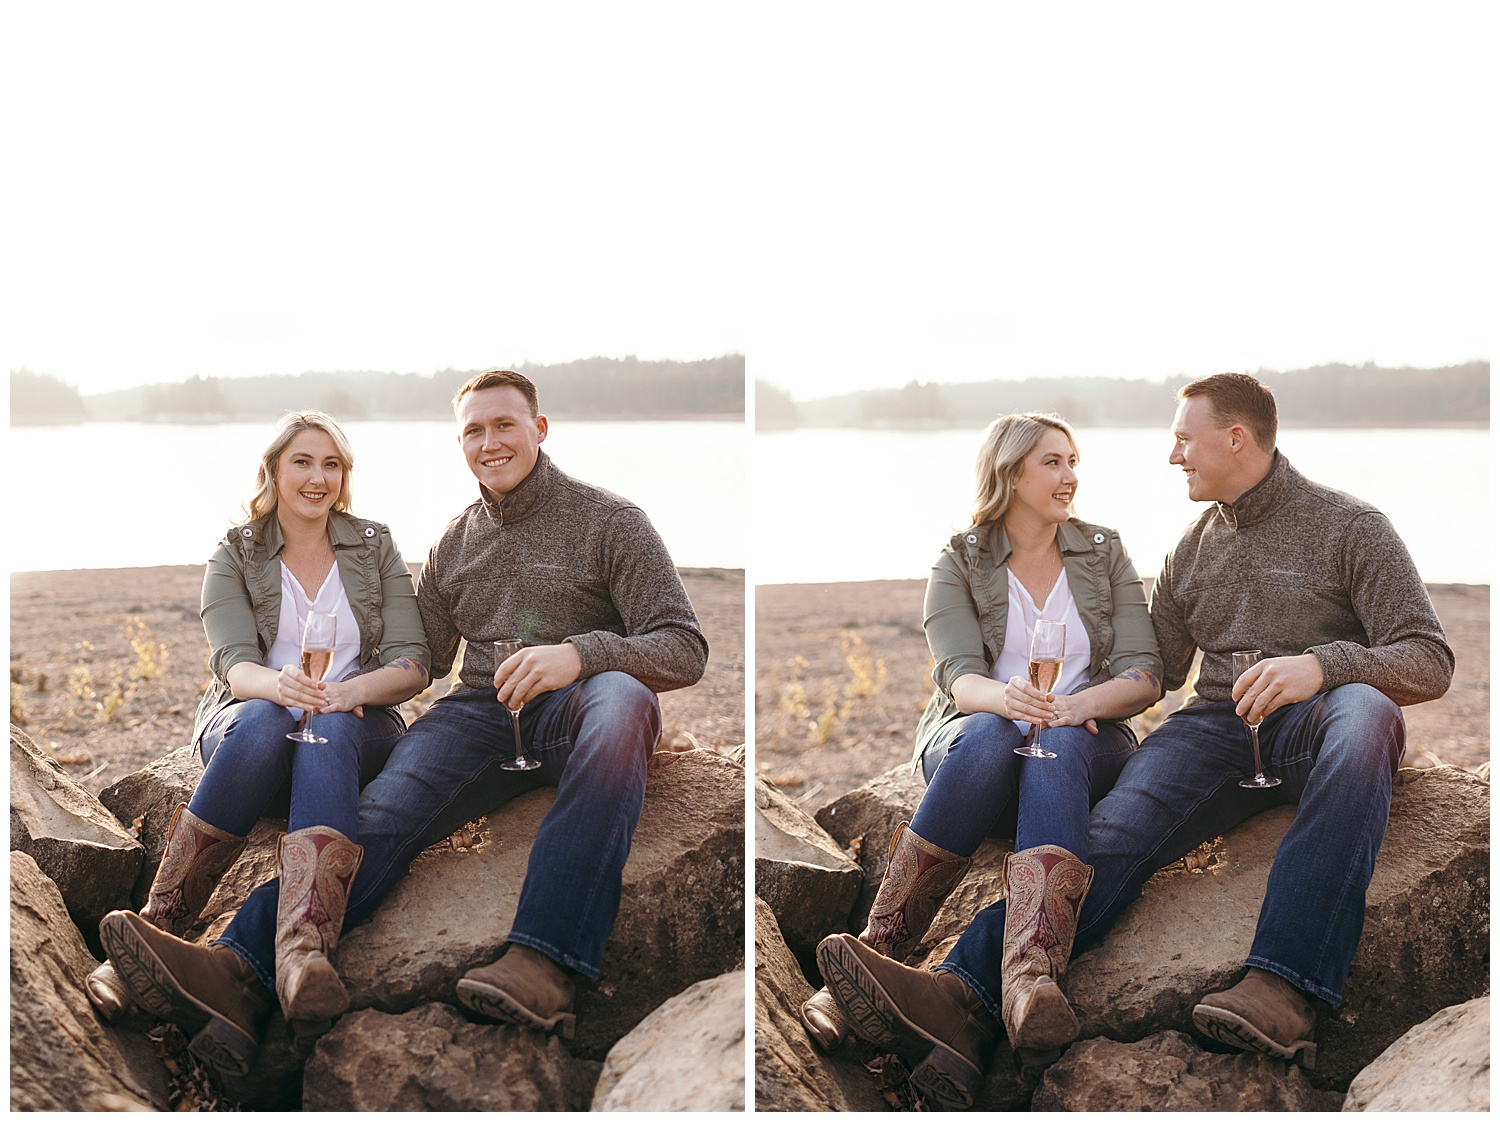 Engagement pictures at Jenkinson lake in El Dorado National Forest